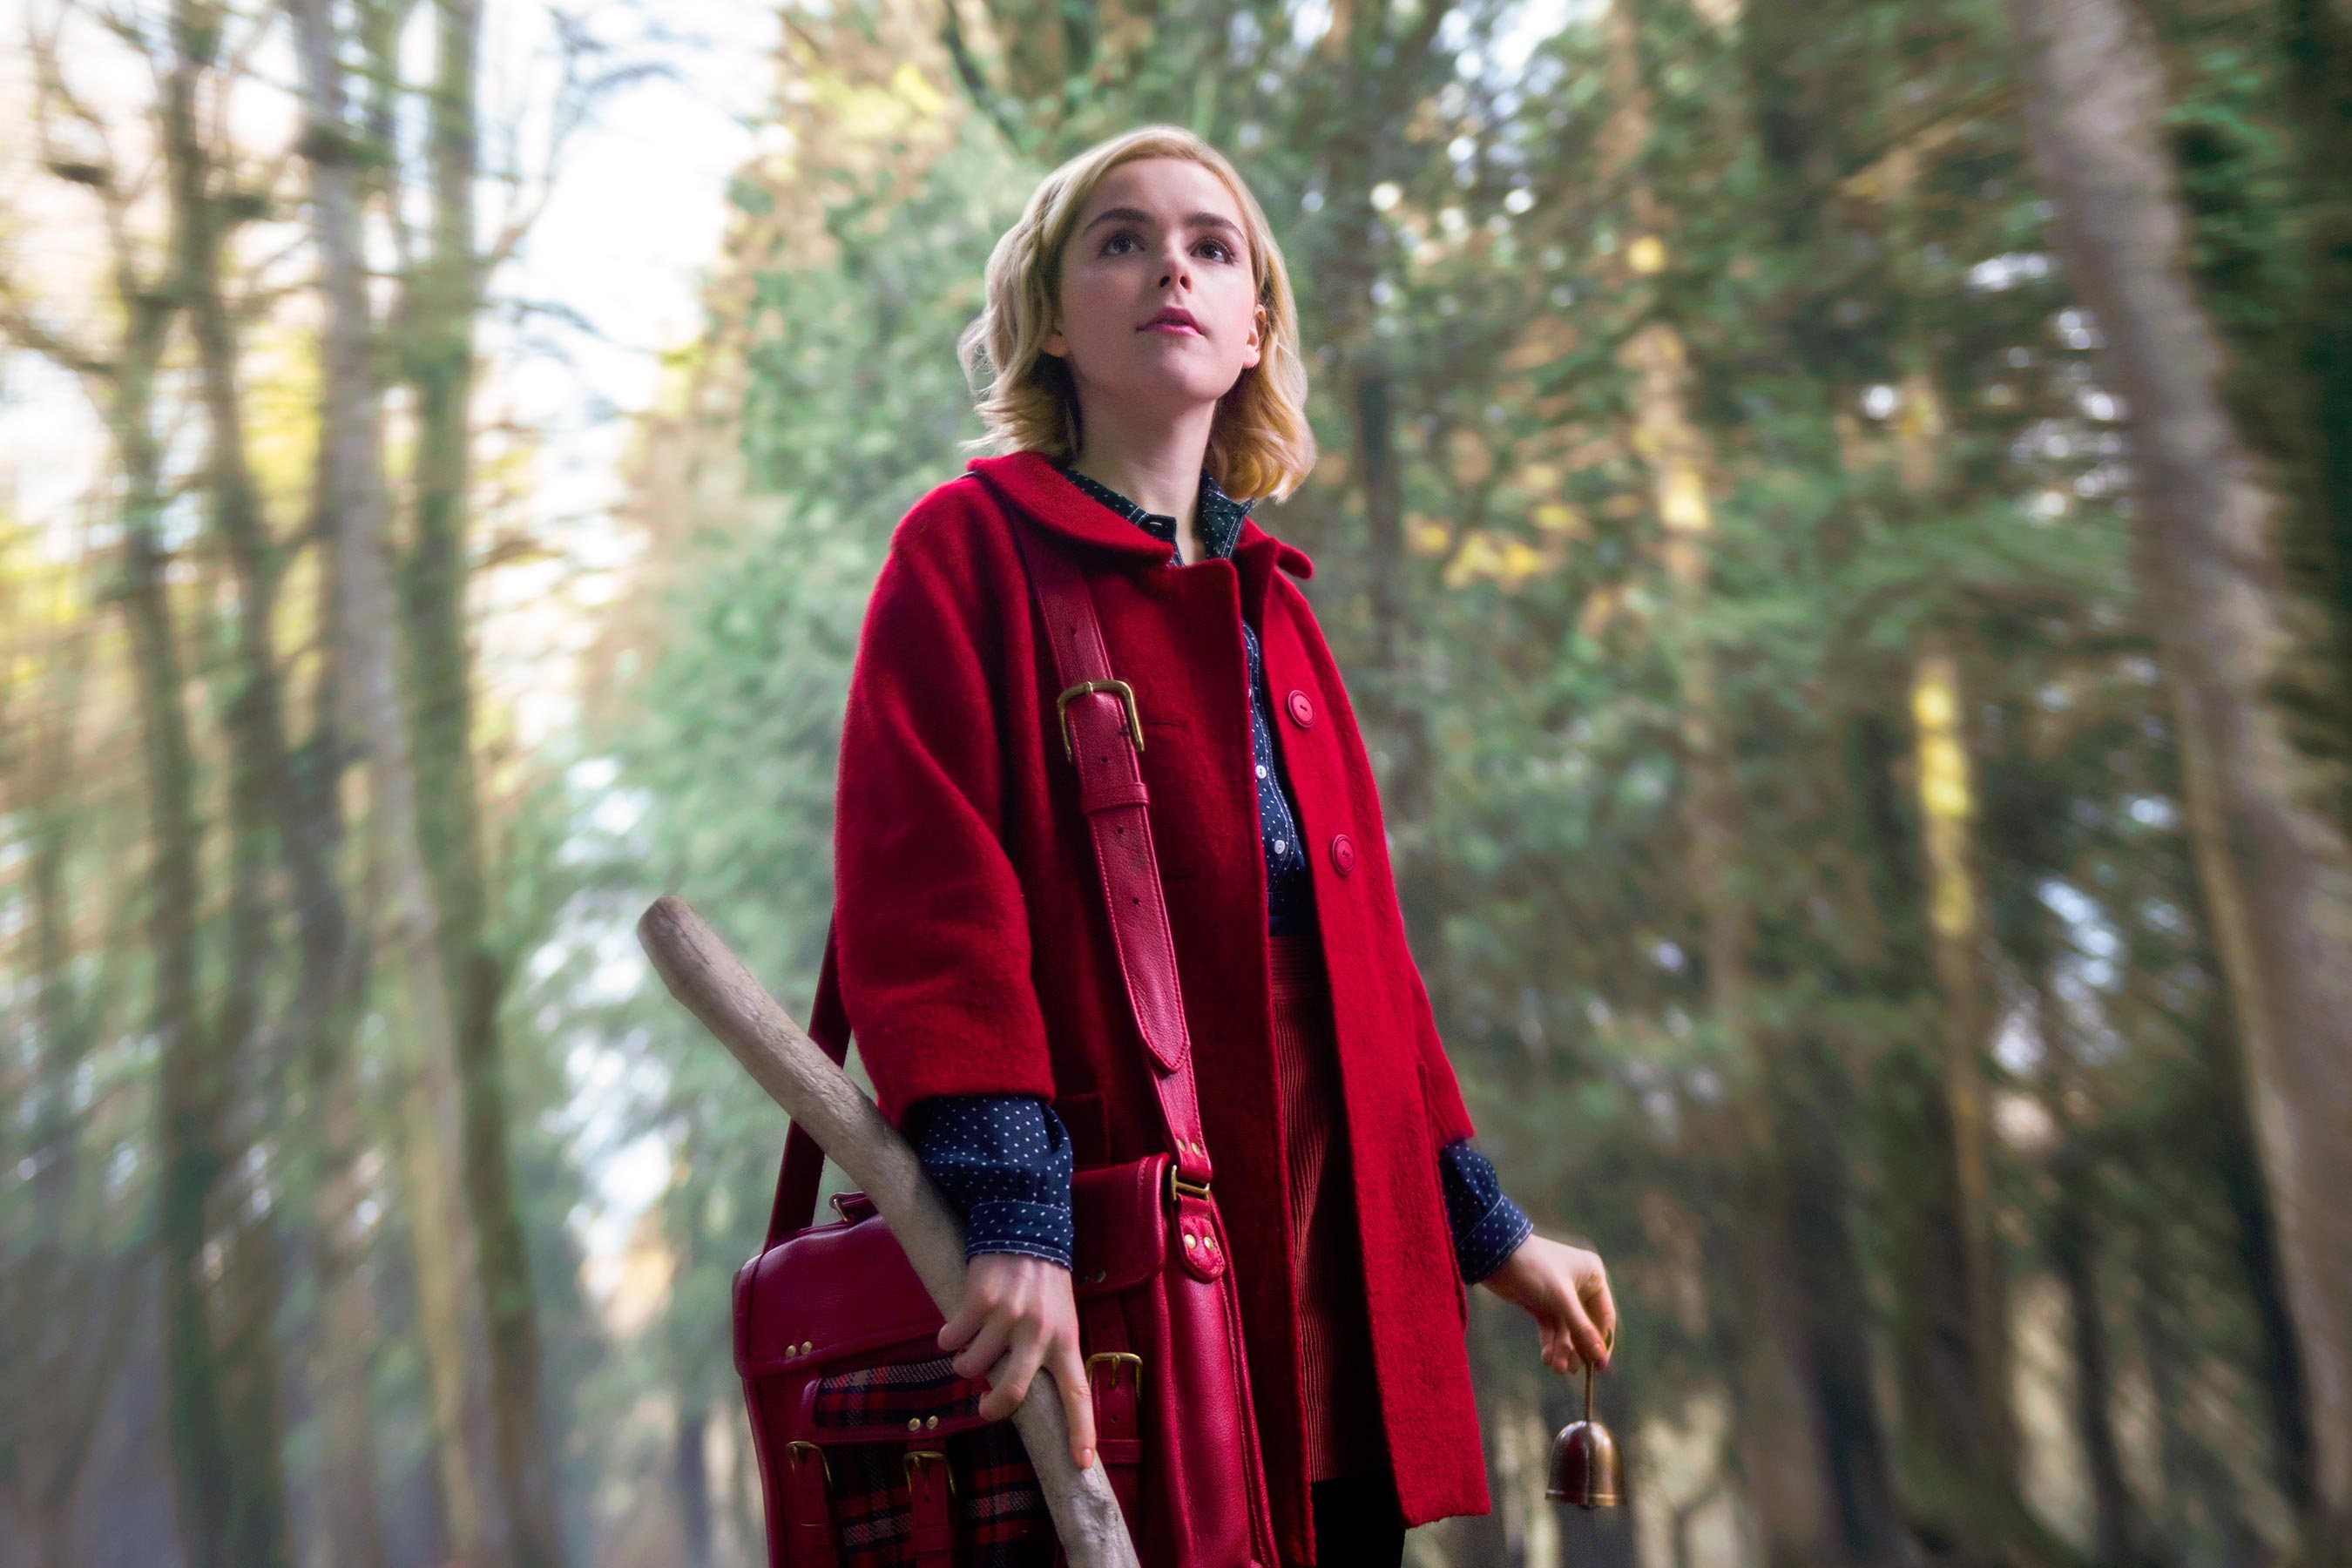 First images released from 'Chilling Adventures of Sabrina'